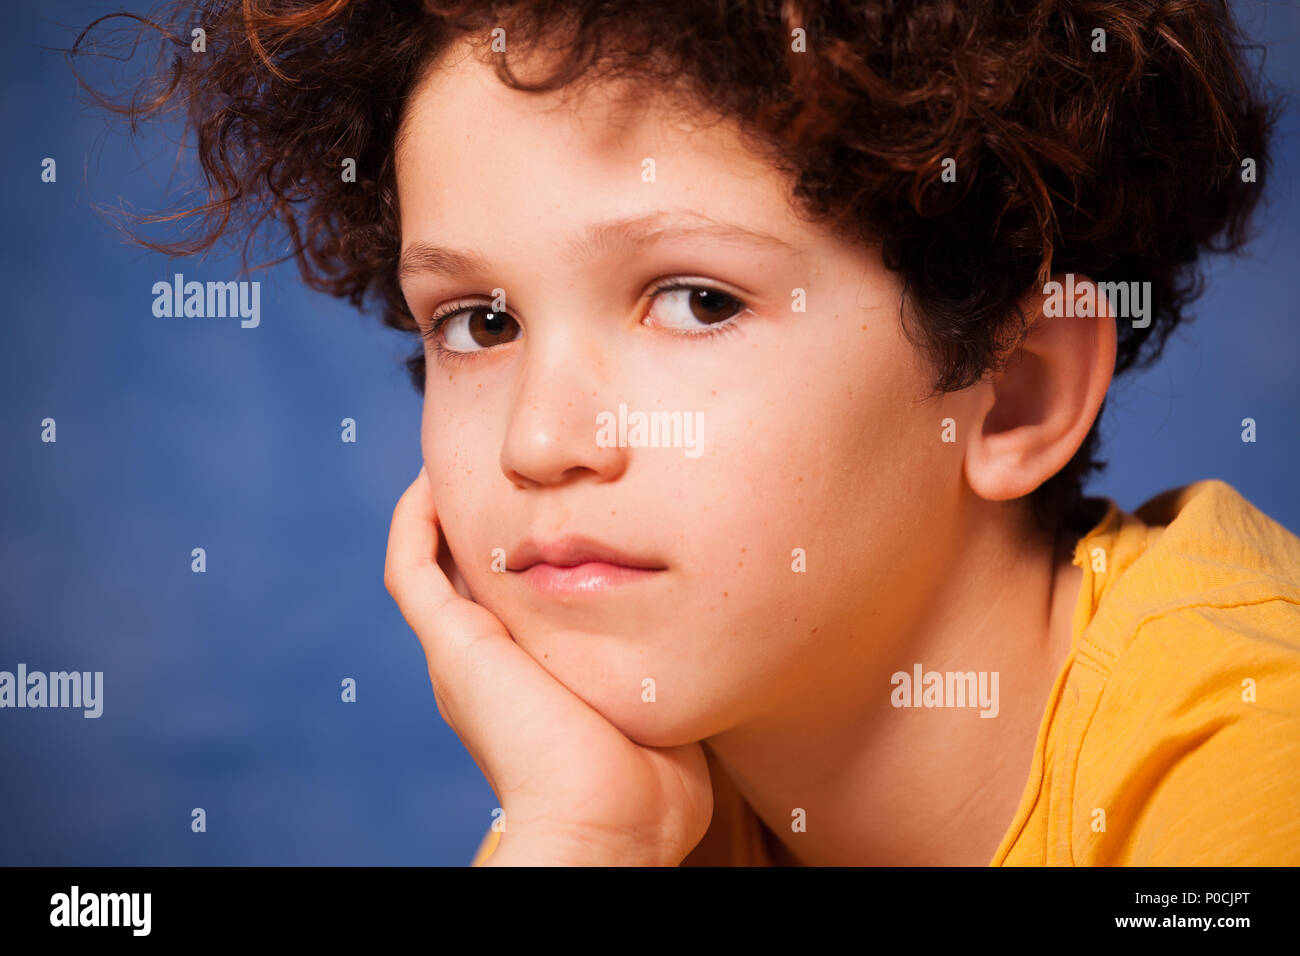 Close-up portrait of thoughtful preteen boy looking at camera - Stock Image